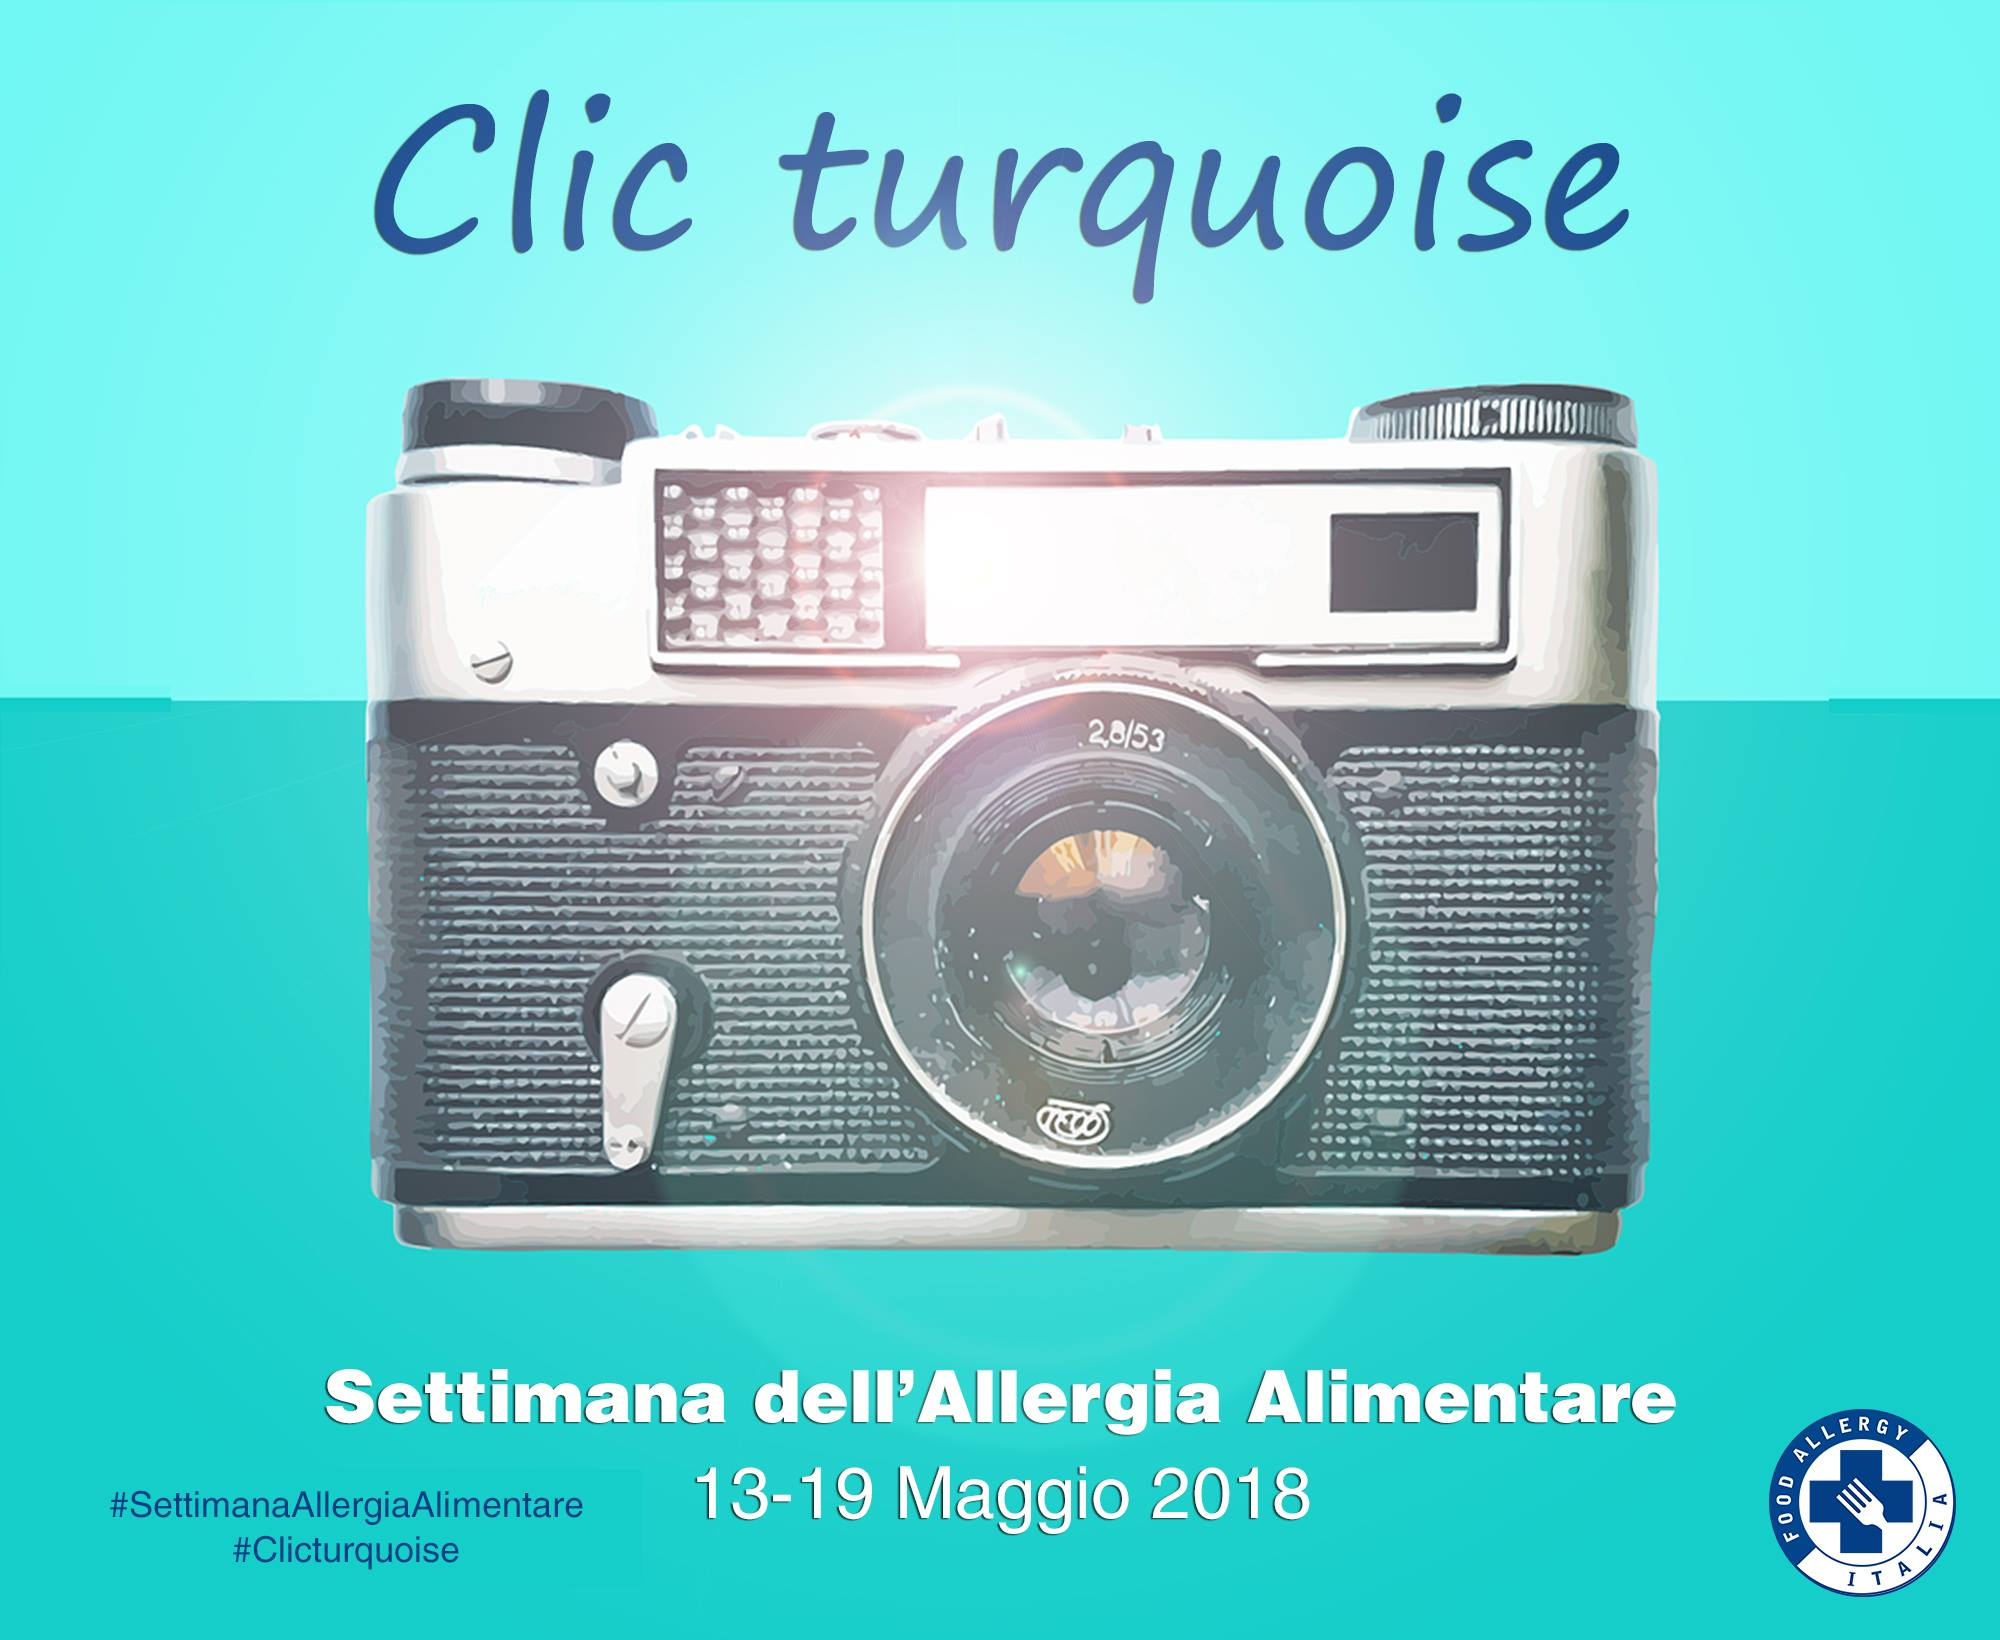 Clic Turquoise Campaign 1